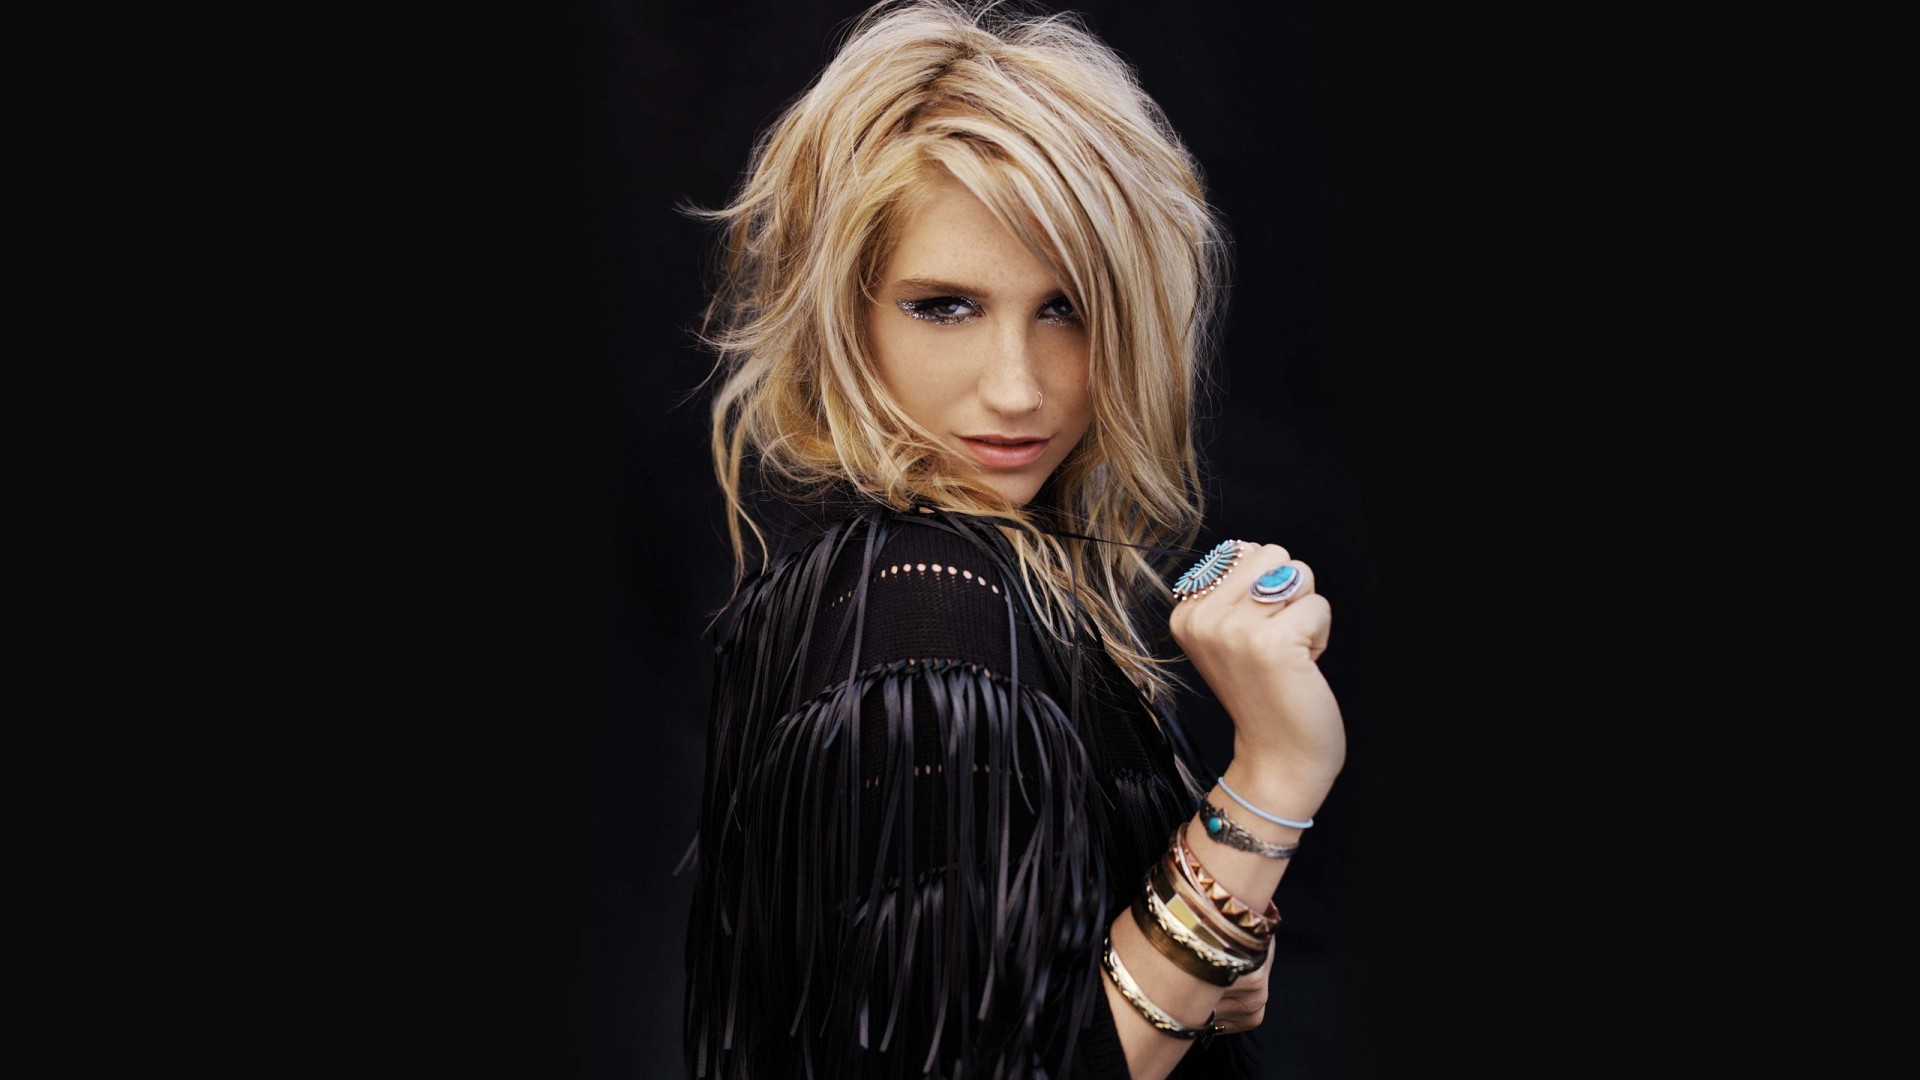 Kesha 2013 Background High Quality WallpapersWallpaper 1920x1080